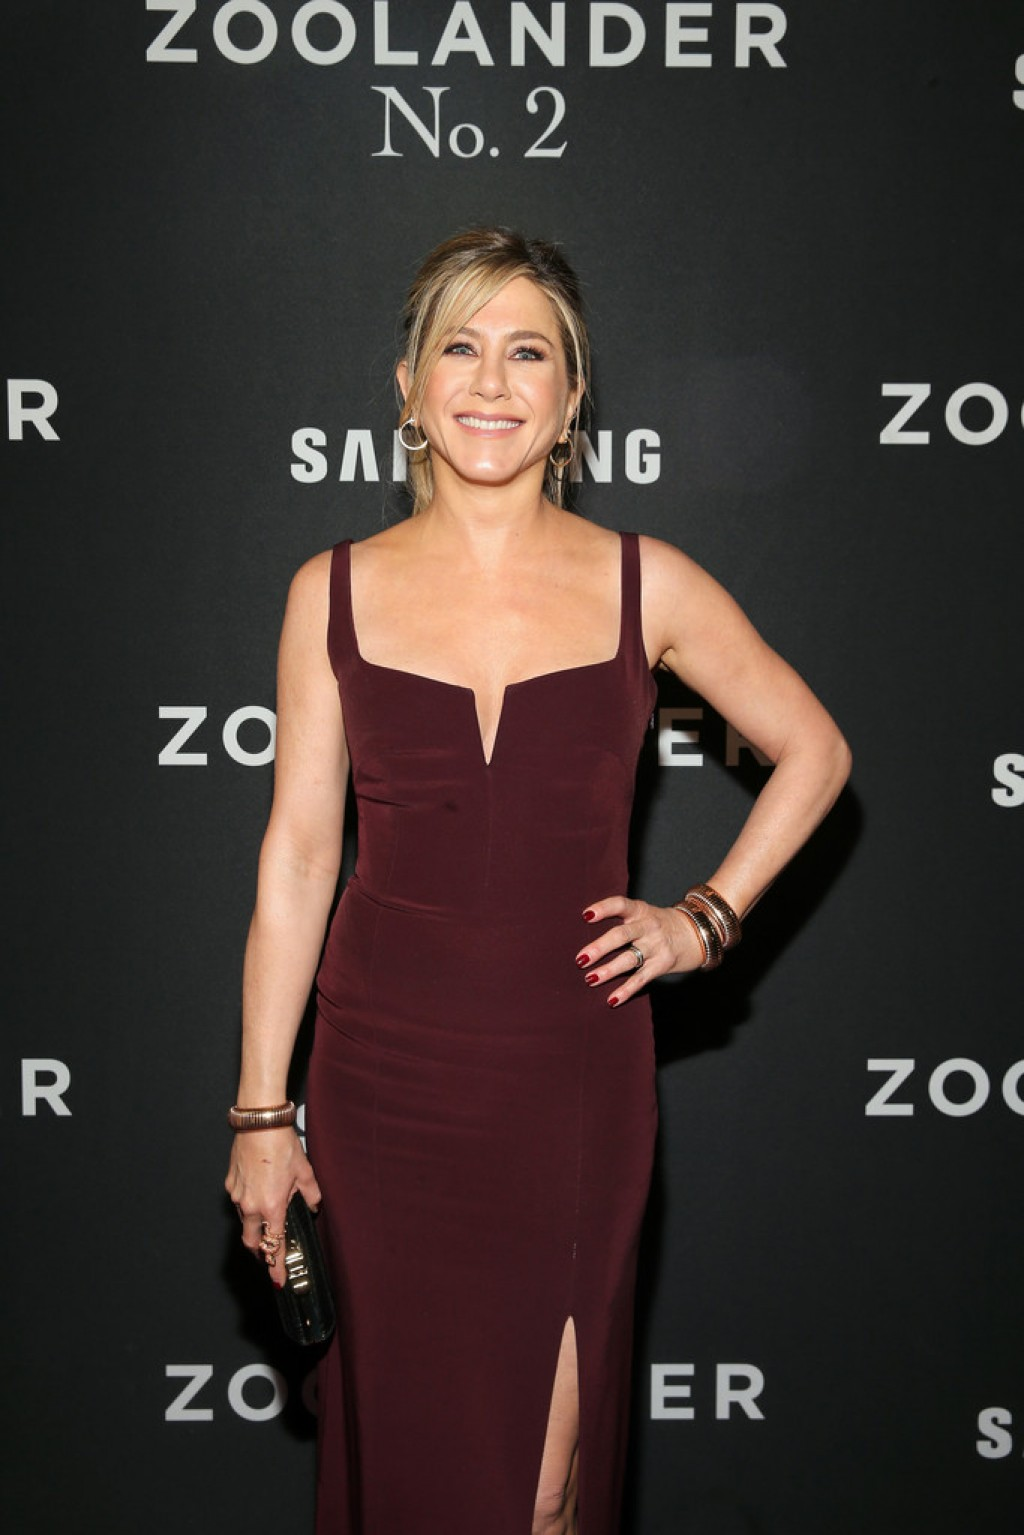 jennifer-aniston-zoolander-2-world-premiere-galvan-style-1024x1535